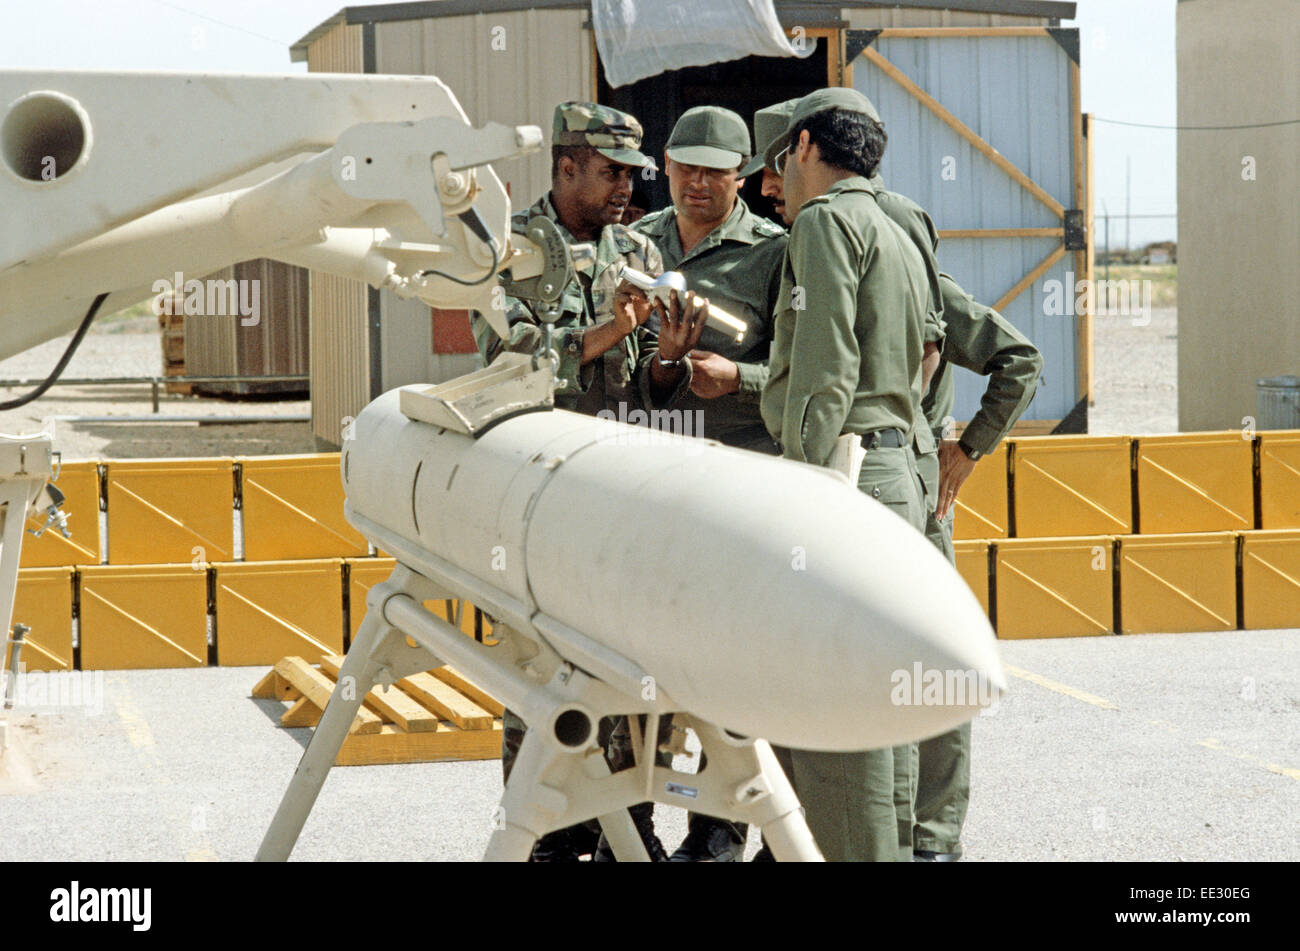 EGYPTIAN ARMY TRAINING ON HAWK MISSILES, FORT BLISS, UNITED STATES ARMY POST IN TEXAS, USA - Stock Image